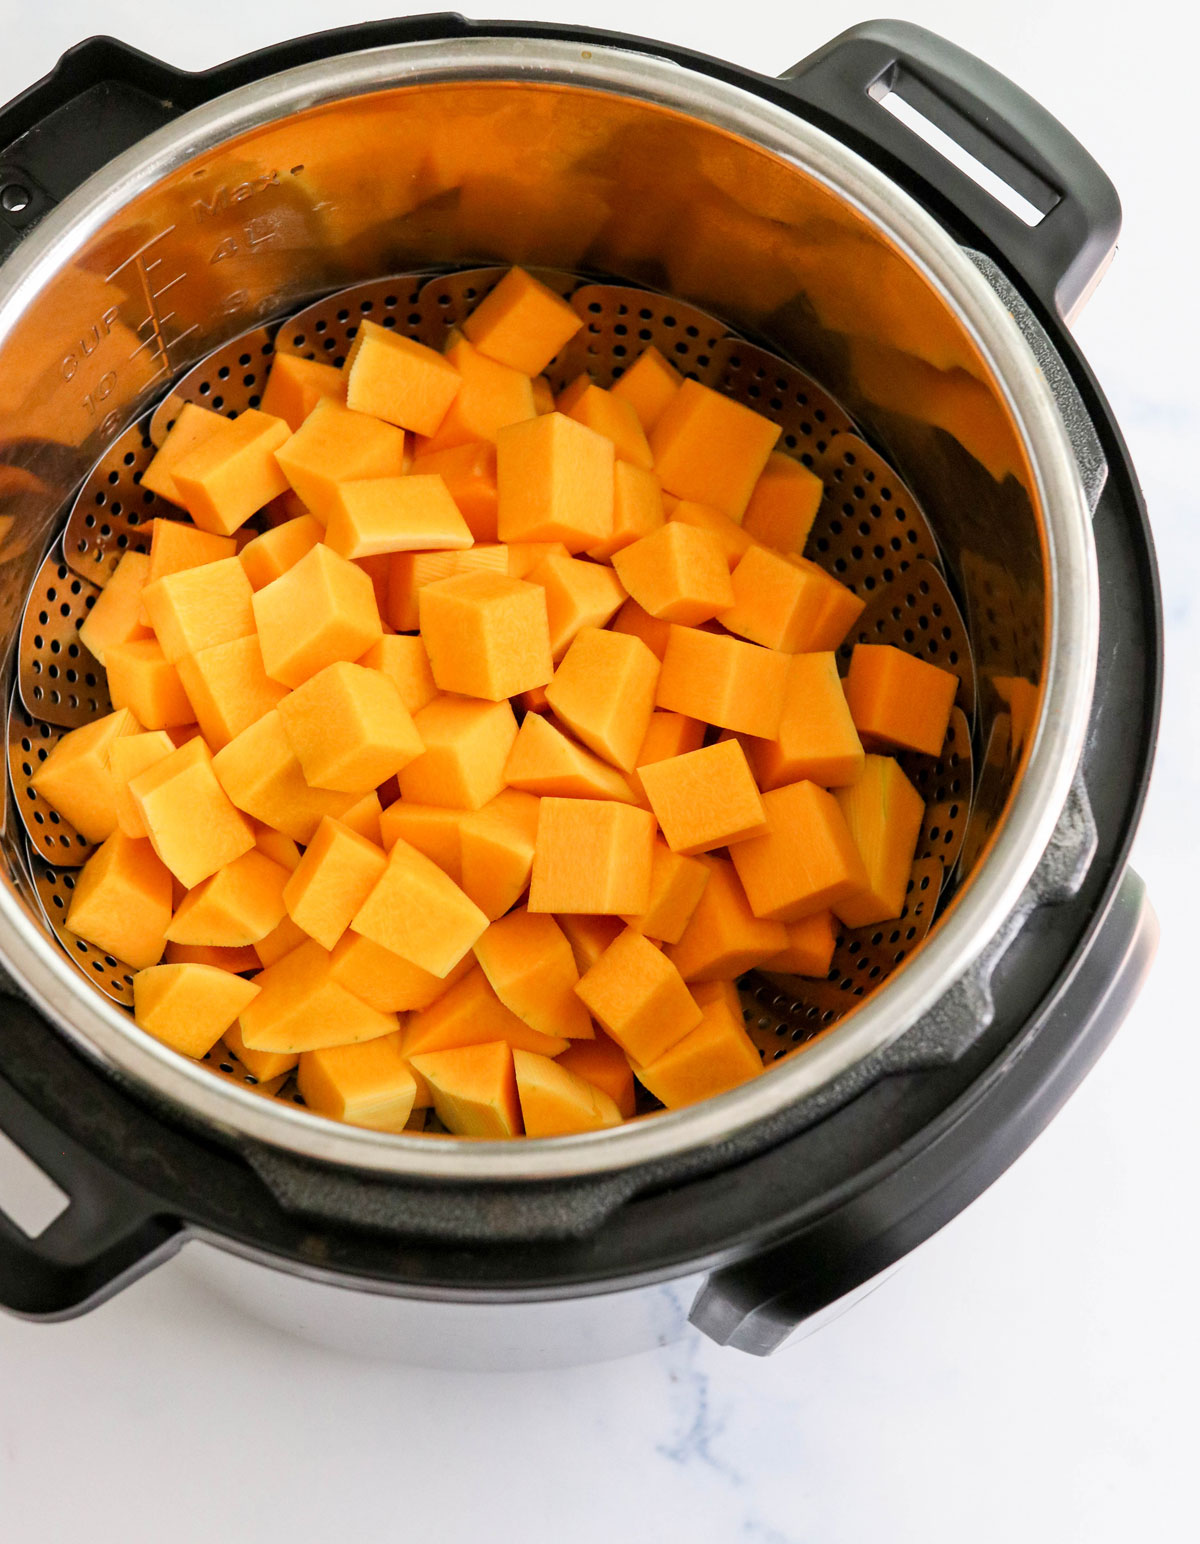 cubed butternut squash in the Instant Pot